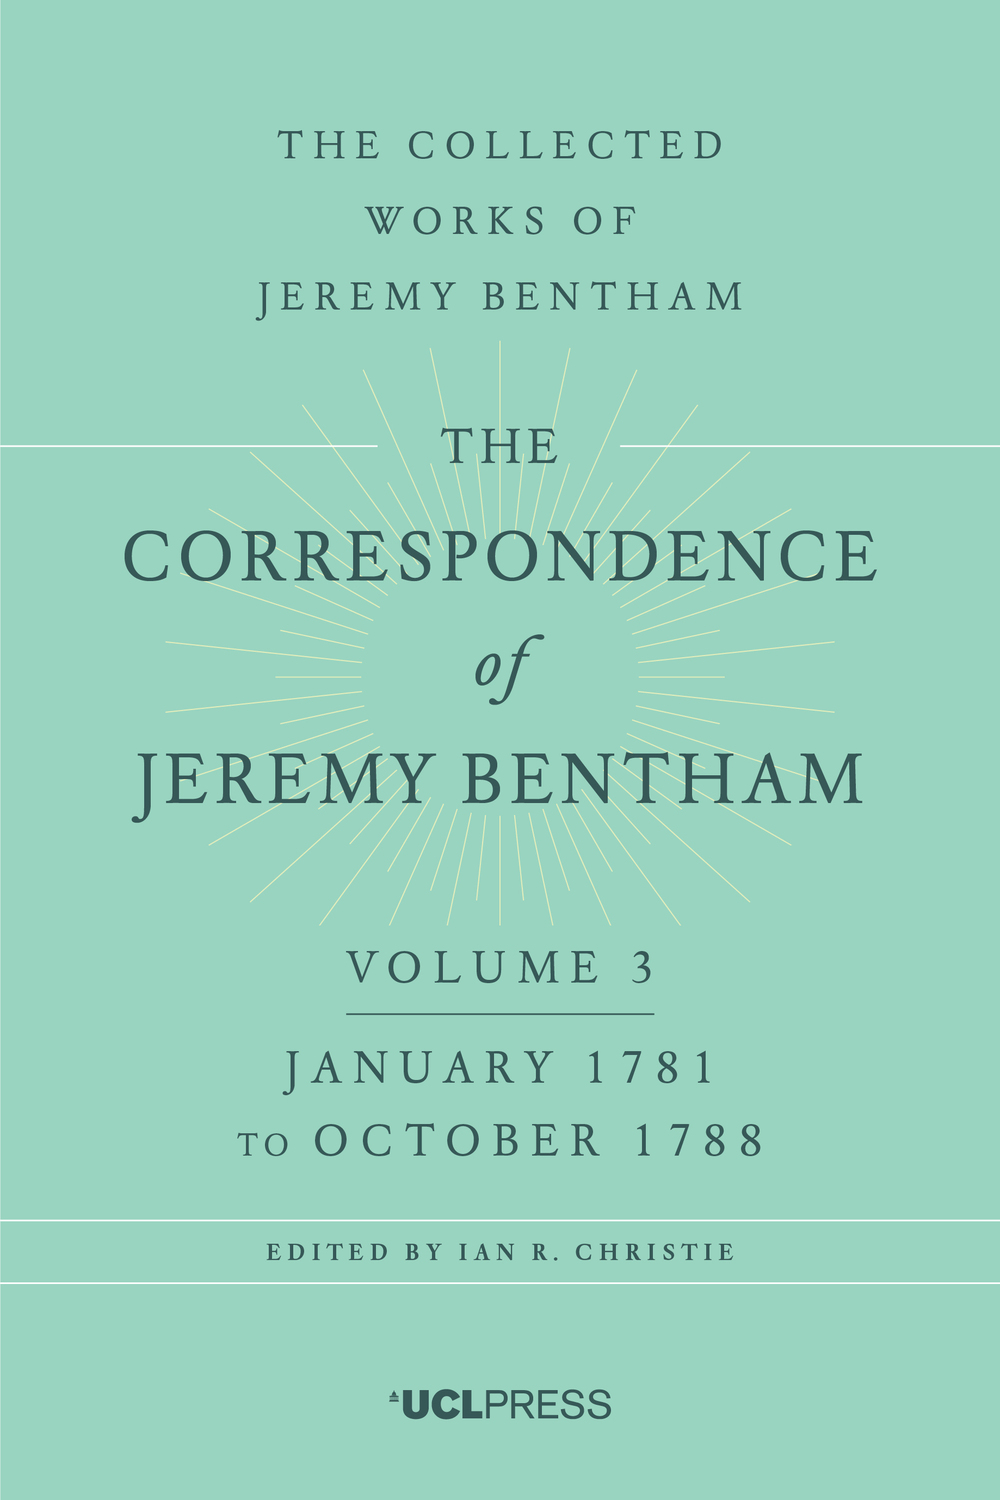 The Correspondence of Jeremy Bentham, Volume 3